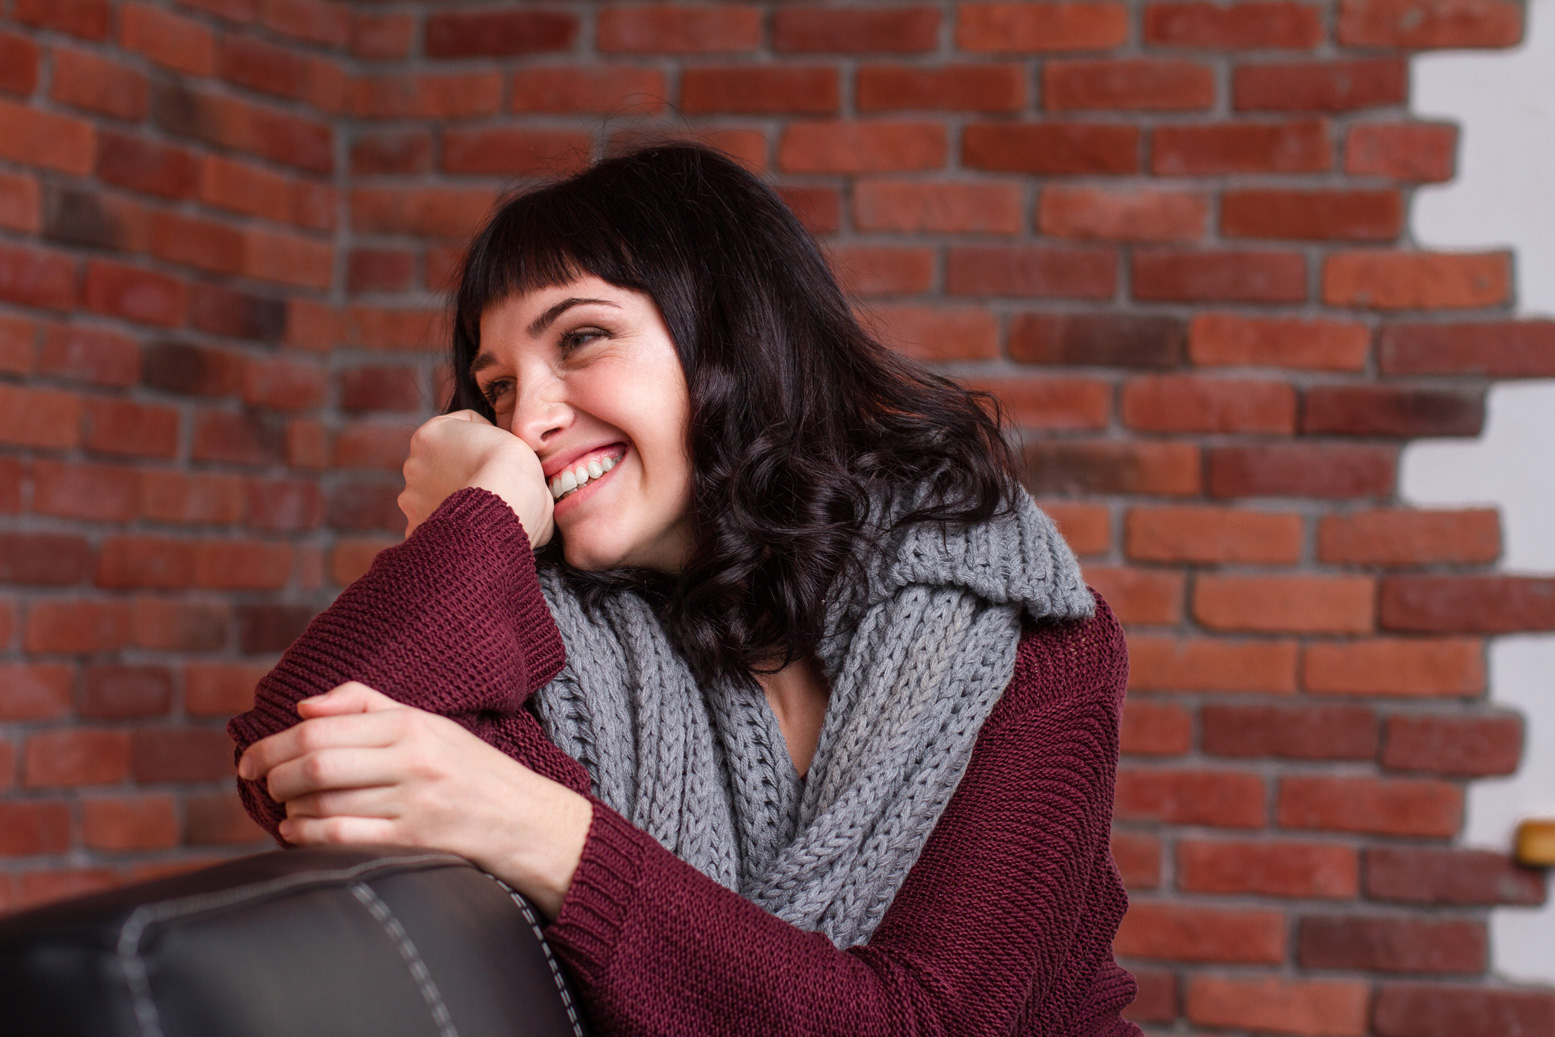 A woman getting shy and laughing.